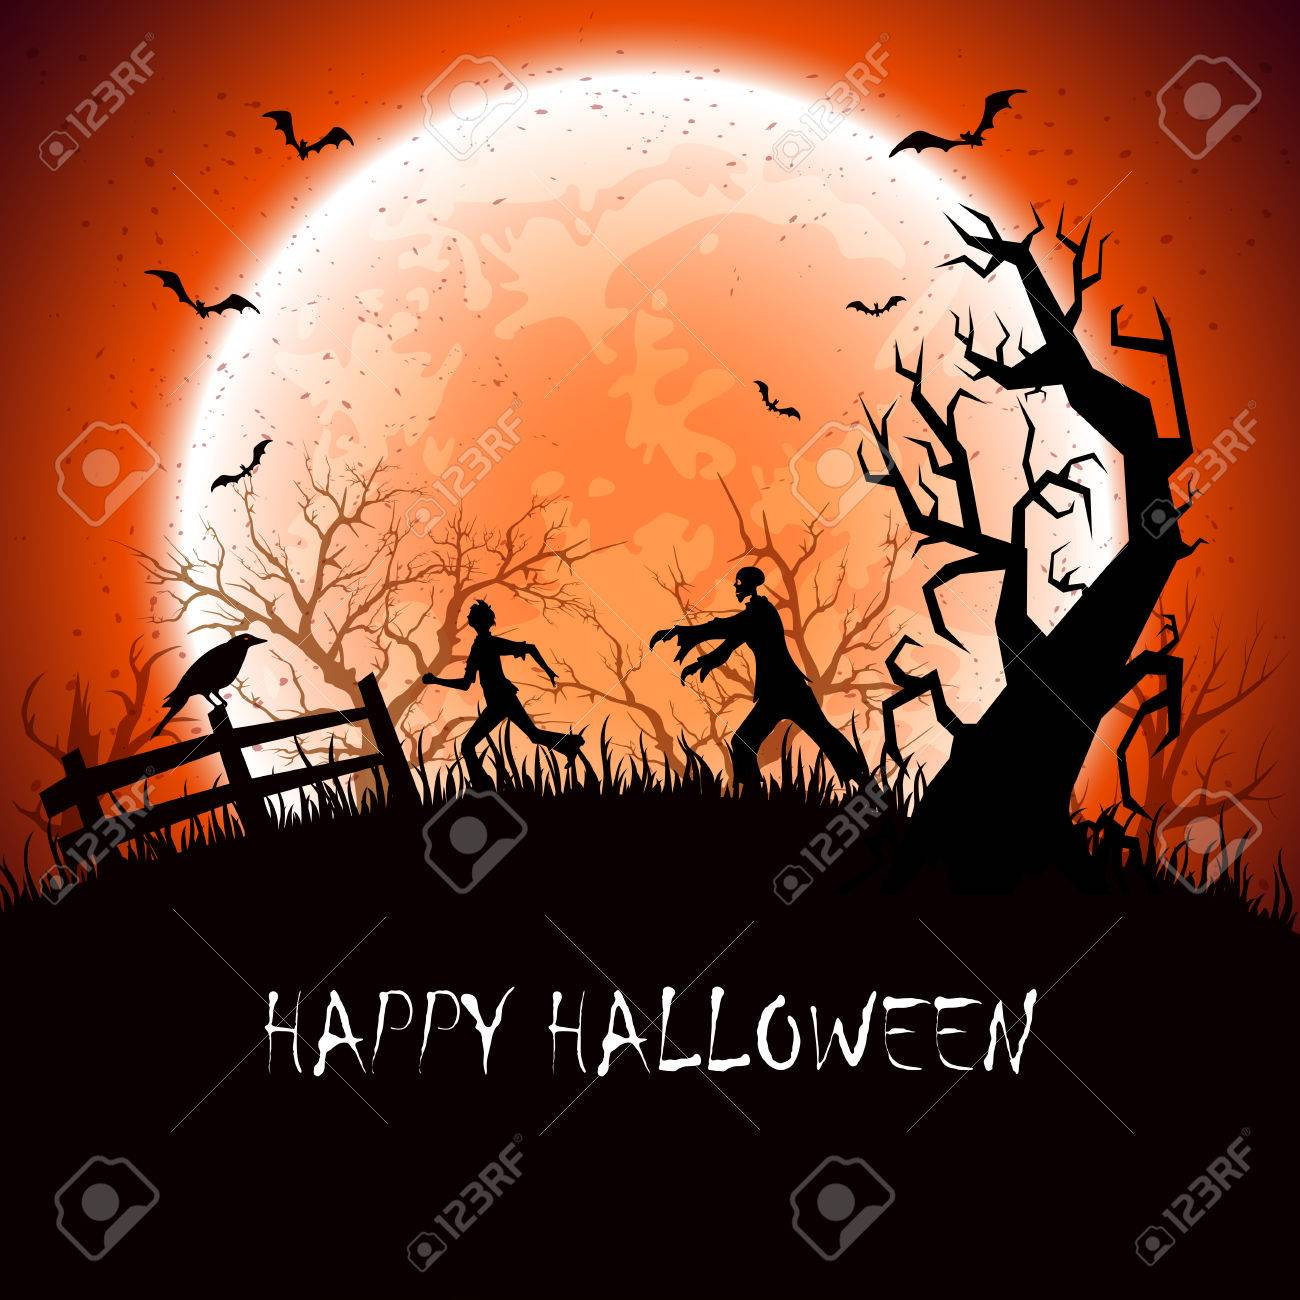 Halloween background with scary zombie and fearfulness running man, illustration. - 43636911